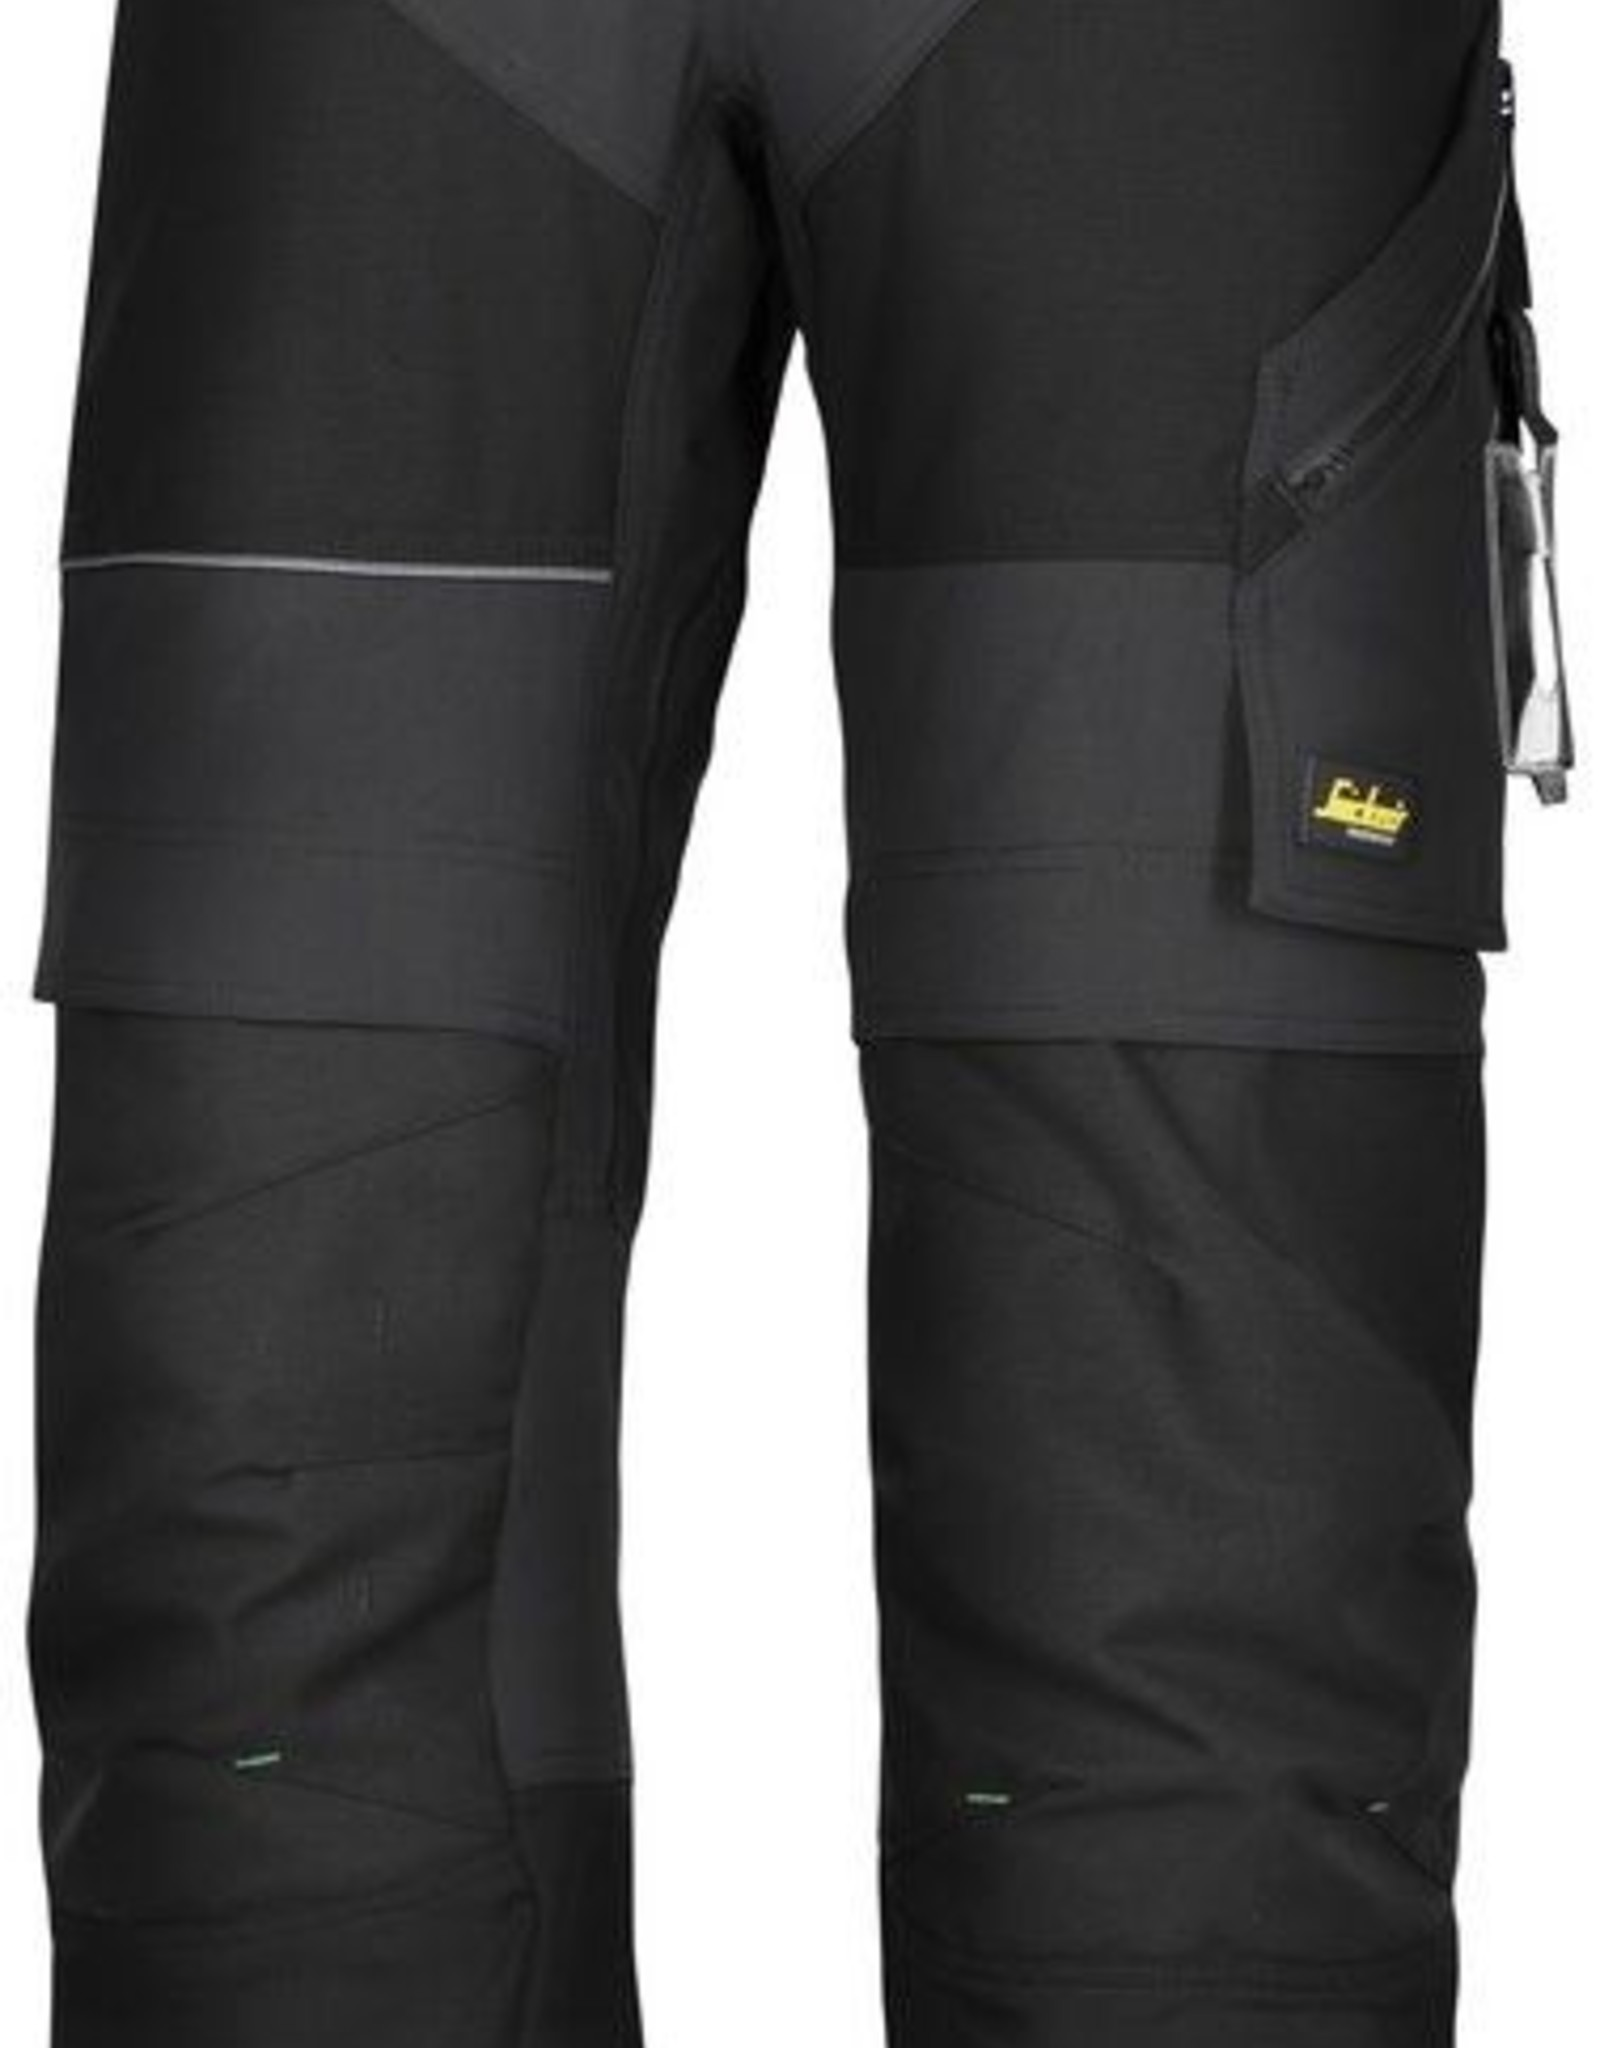 Snickers Workwear Snickers Flexiwork, superior movement